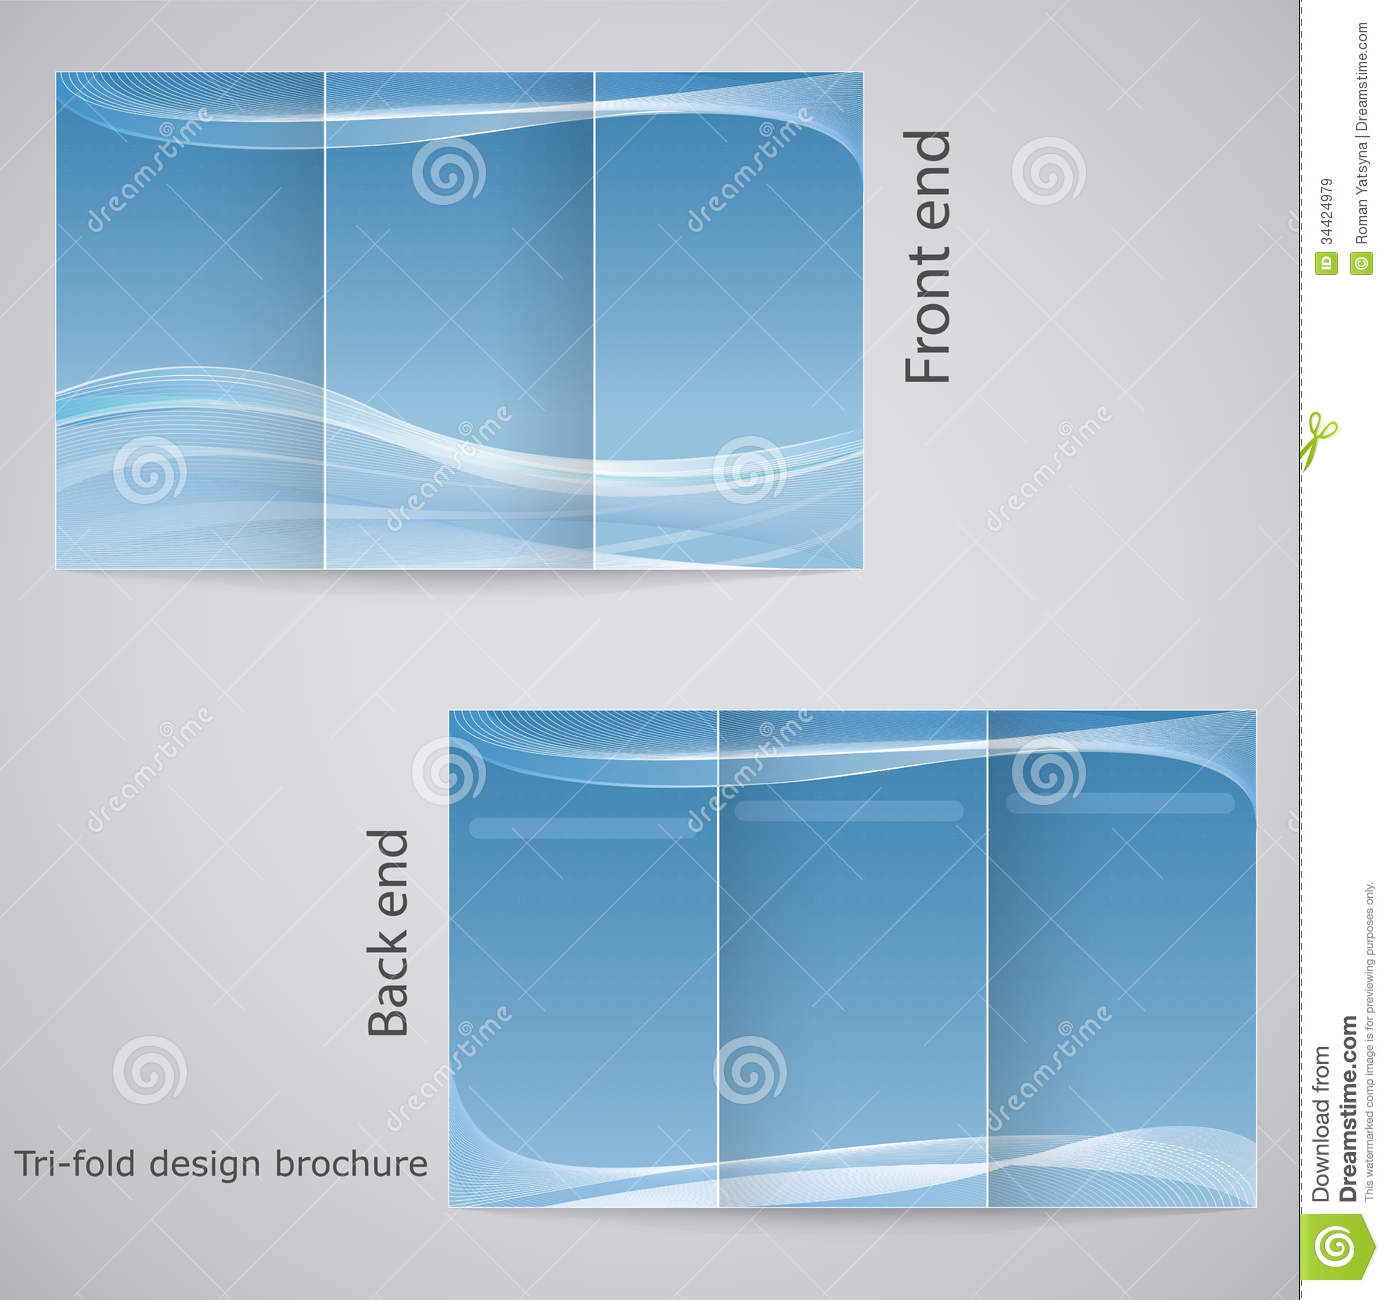 17 tri fold brochure design templates images tri fold for Word brochure template tri fold